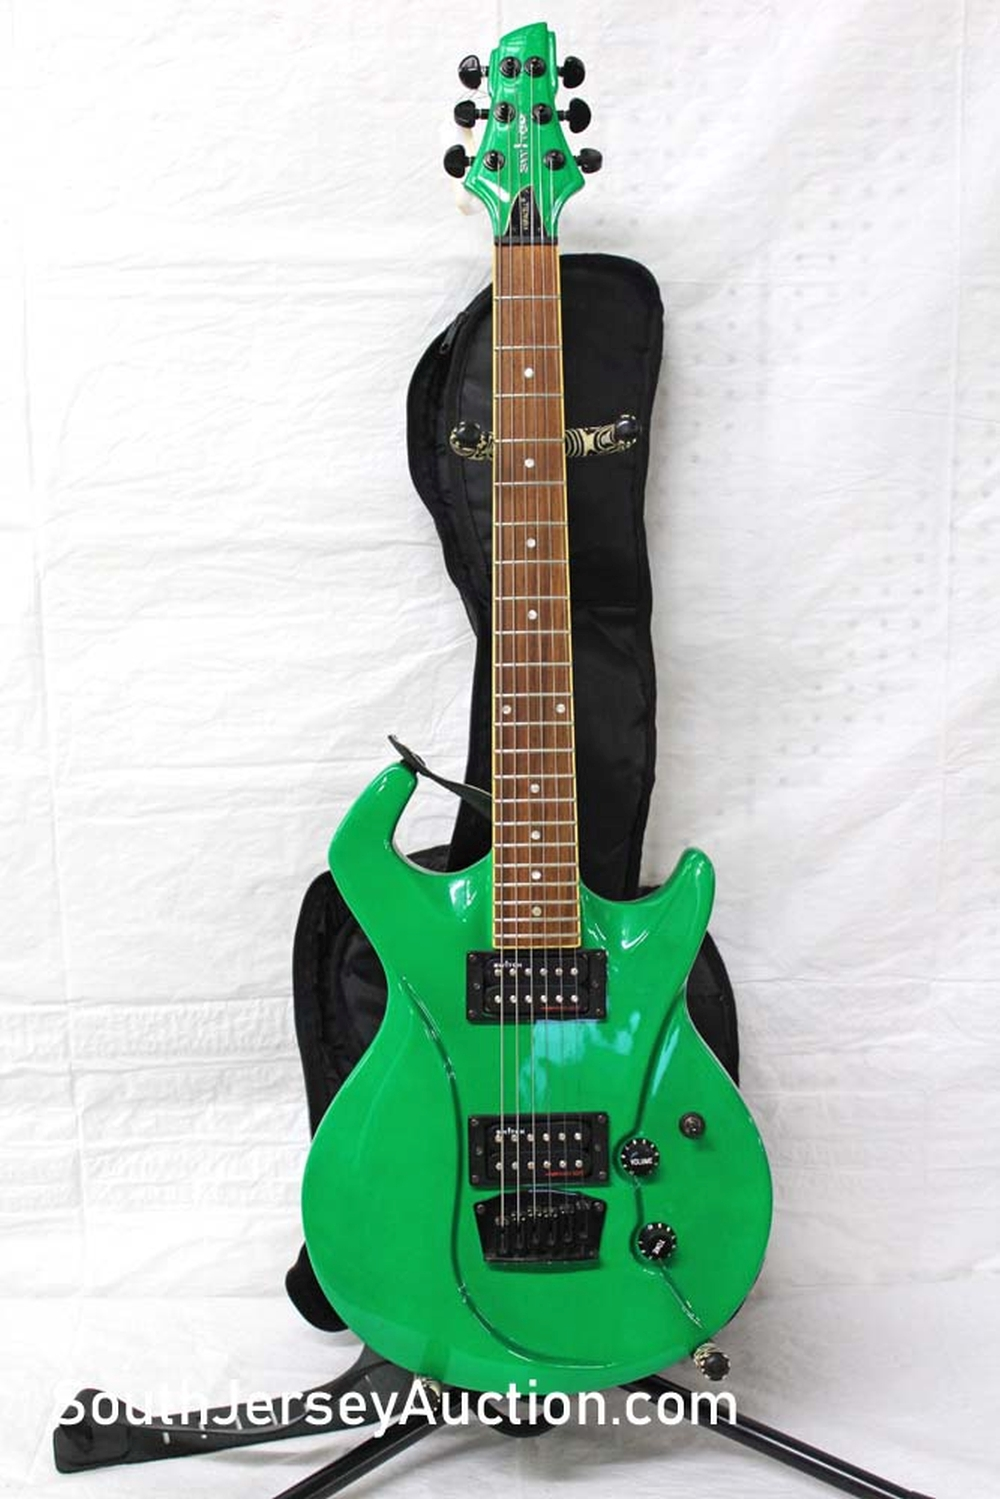 Switch, Vibracell, year unknown, vacuum formed guitar, made in China,  screaming green color with painted head stock, maple fretboard,  s/n 0773087, very good condition